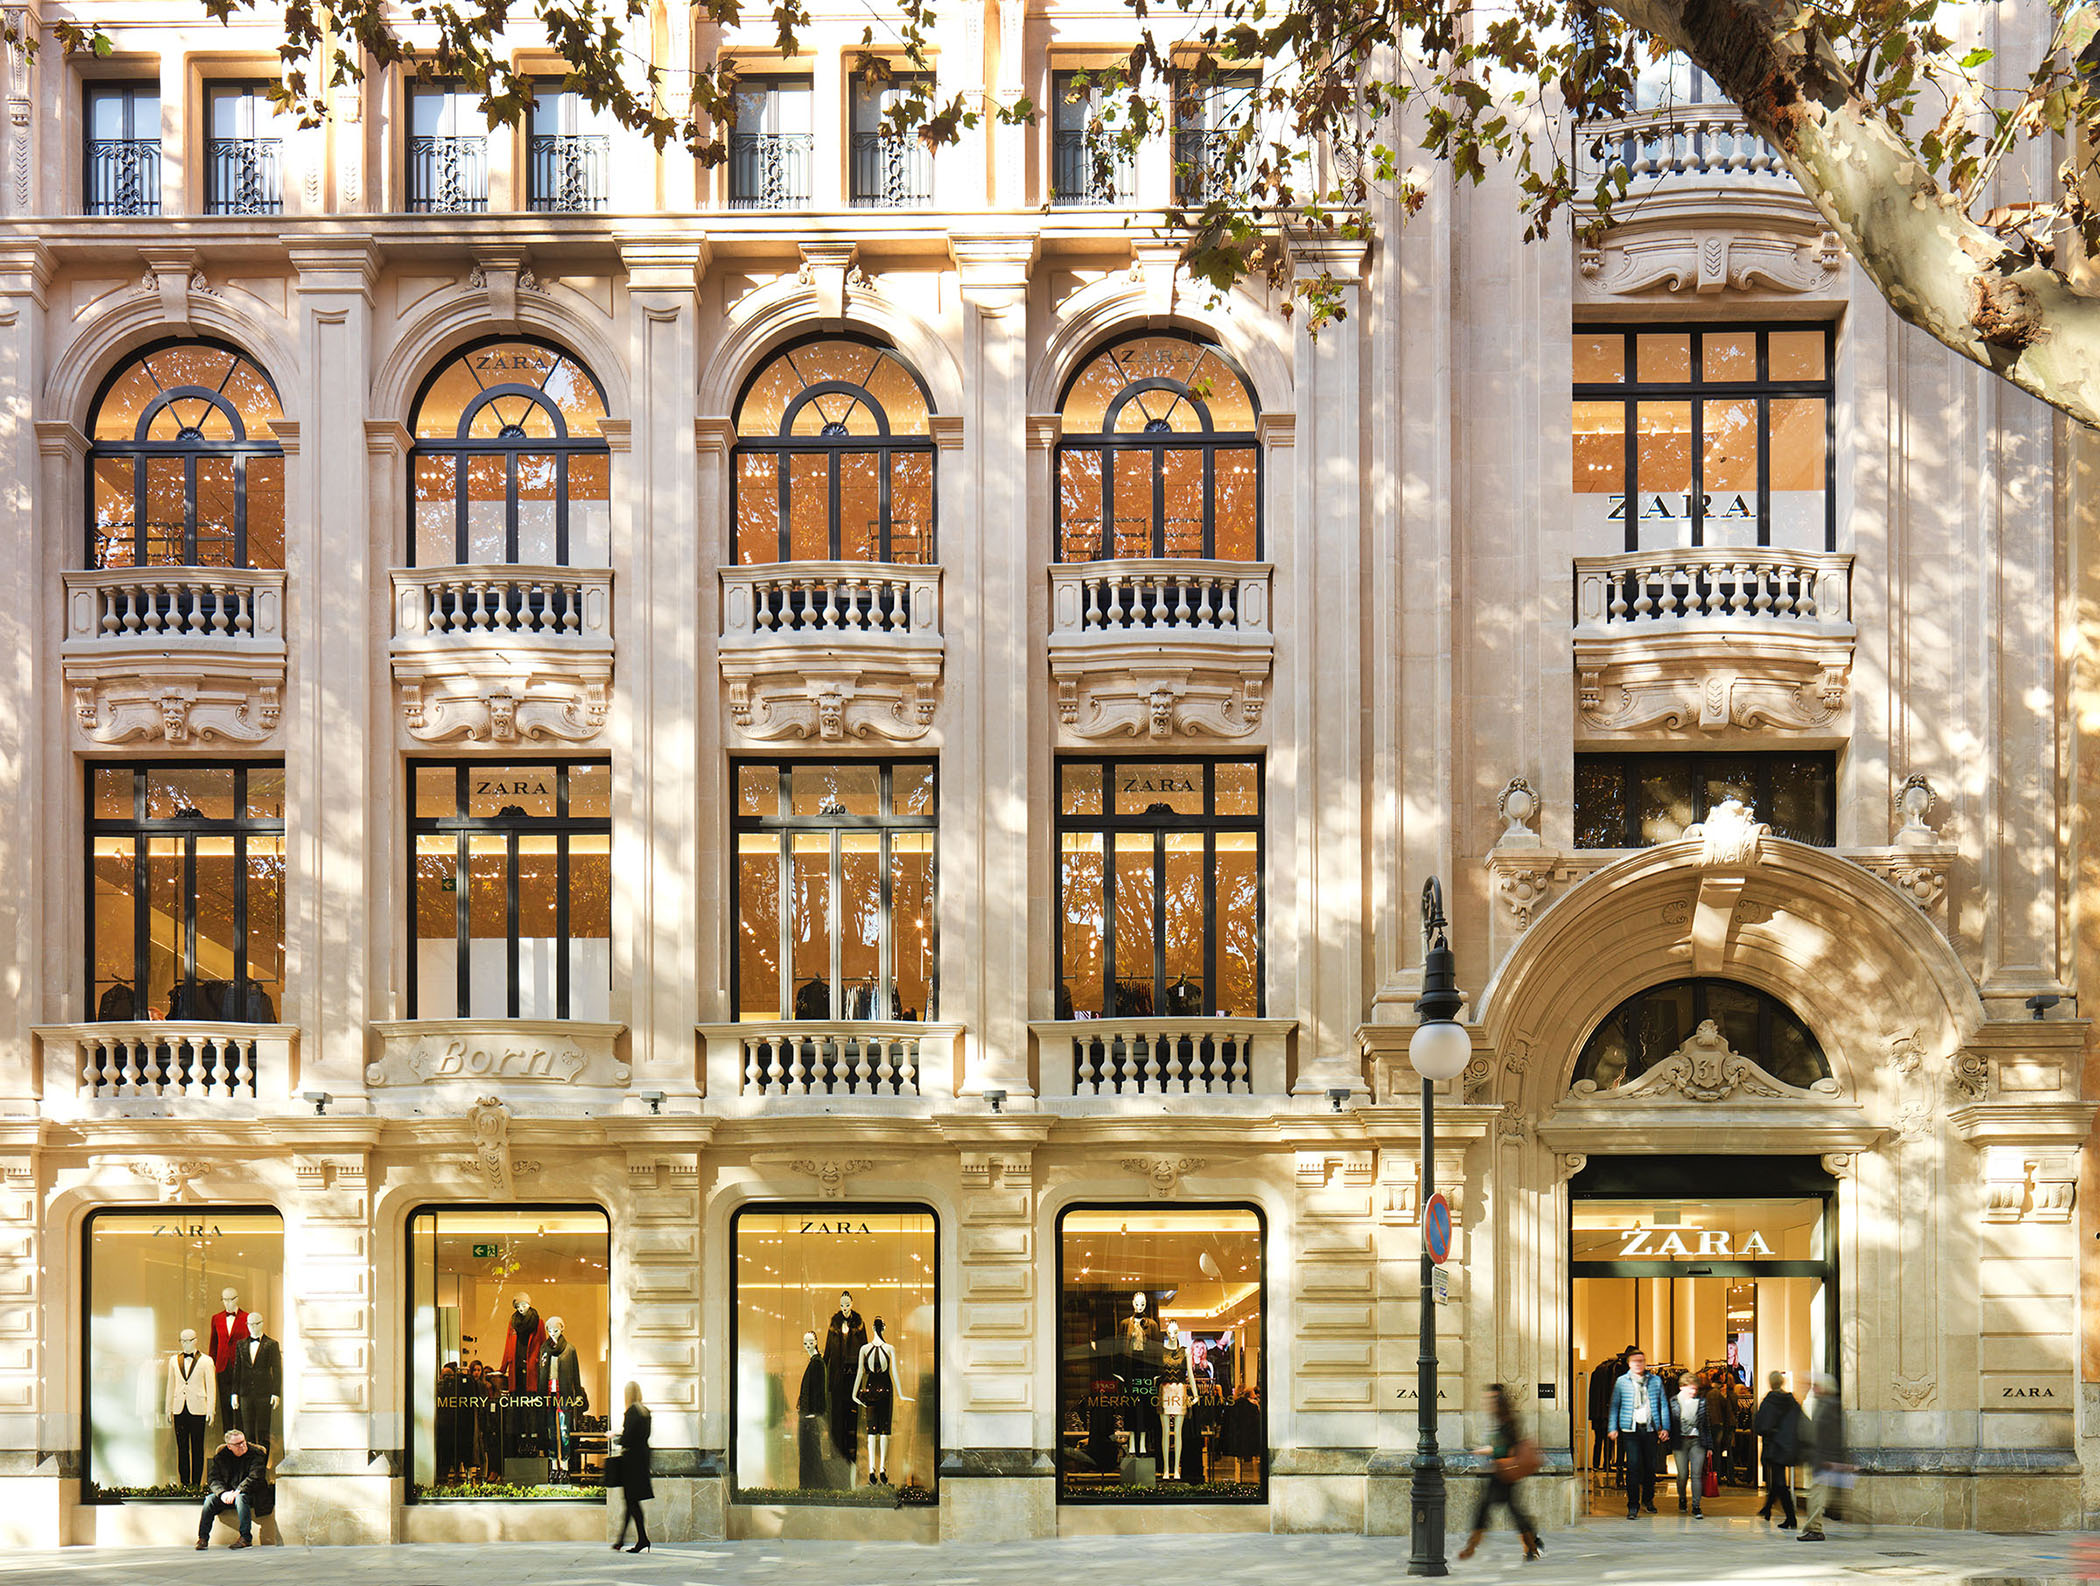 Inditex employees in Spain said the Zara owner is leaving them high and dry as it prepares to permanently shutter 1,200 stores globally.